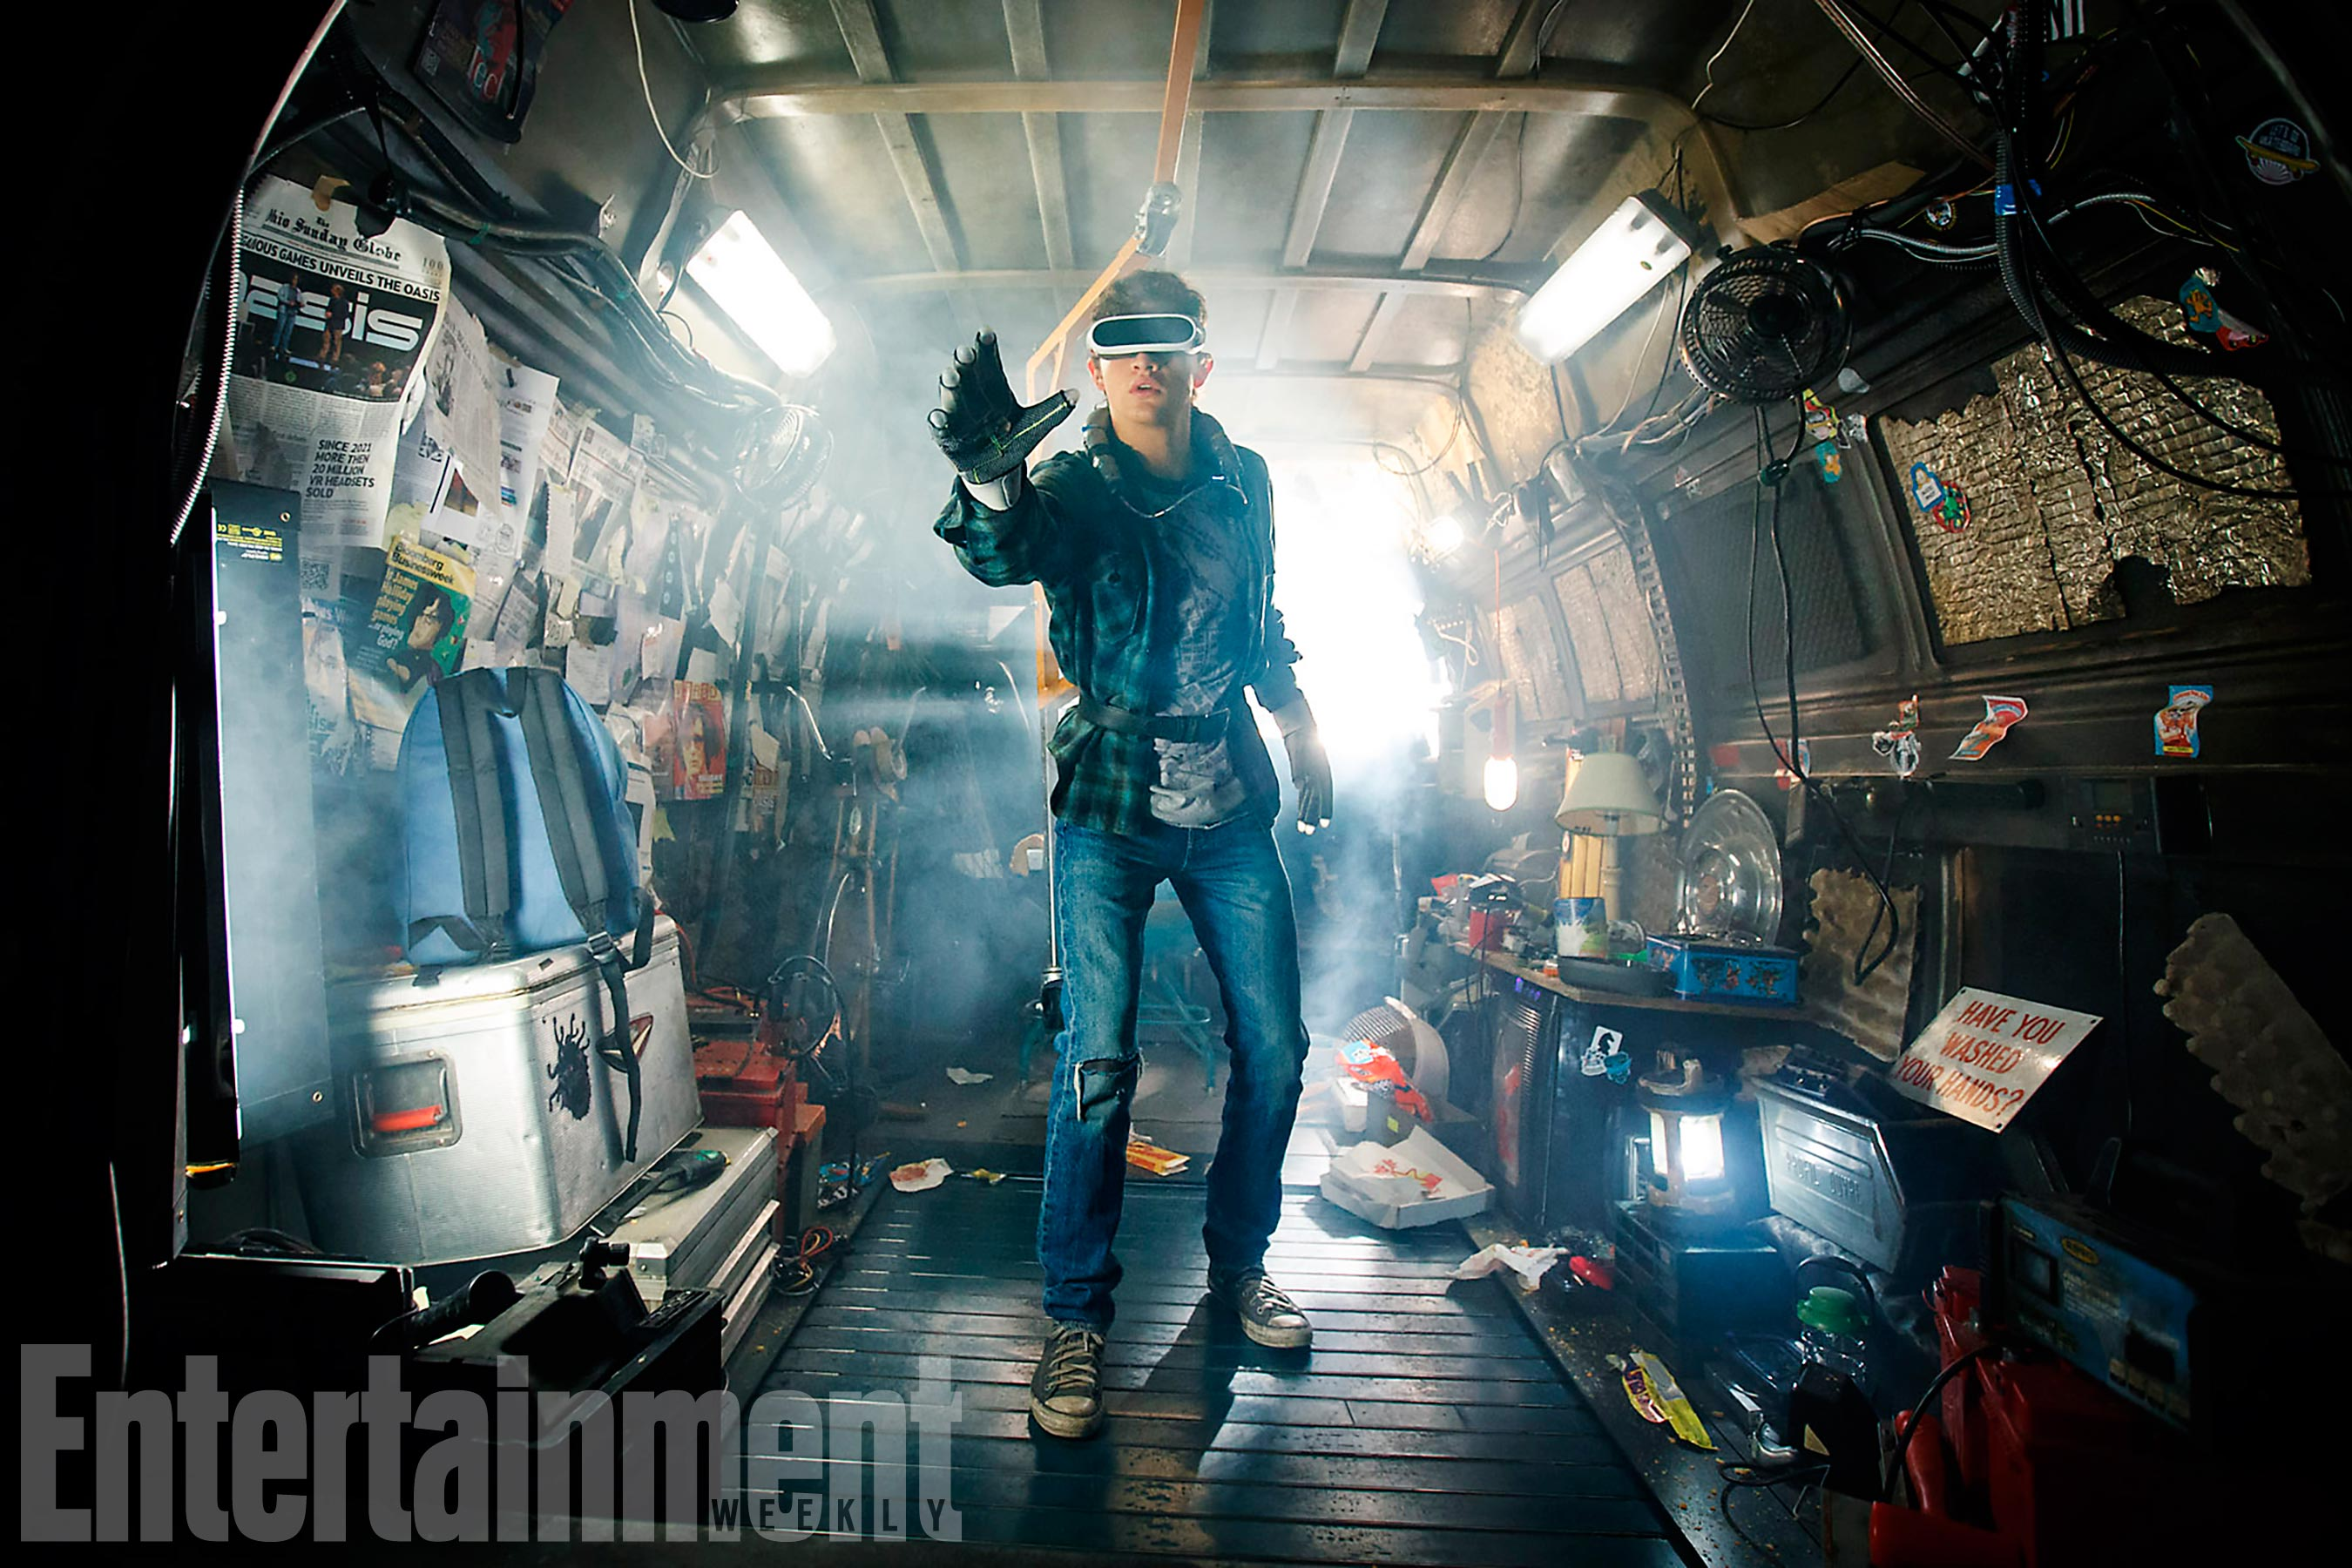 First Look At Ready Player One Invites You Into Wade's Super Secret Hideout